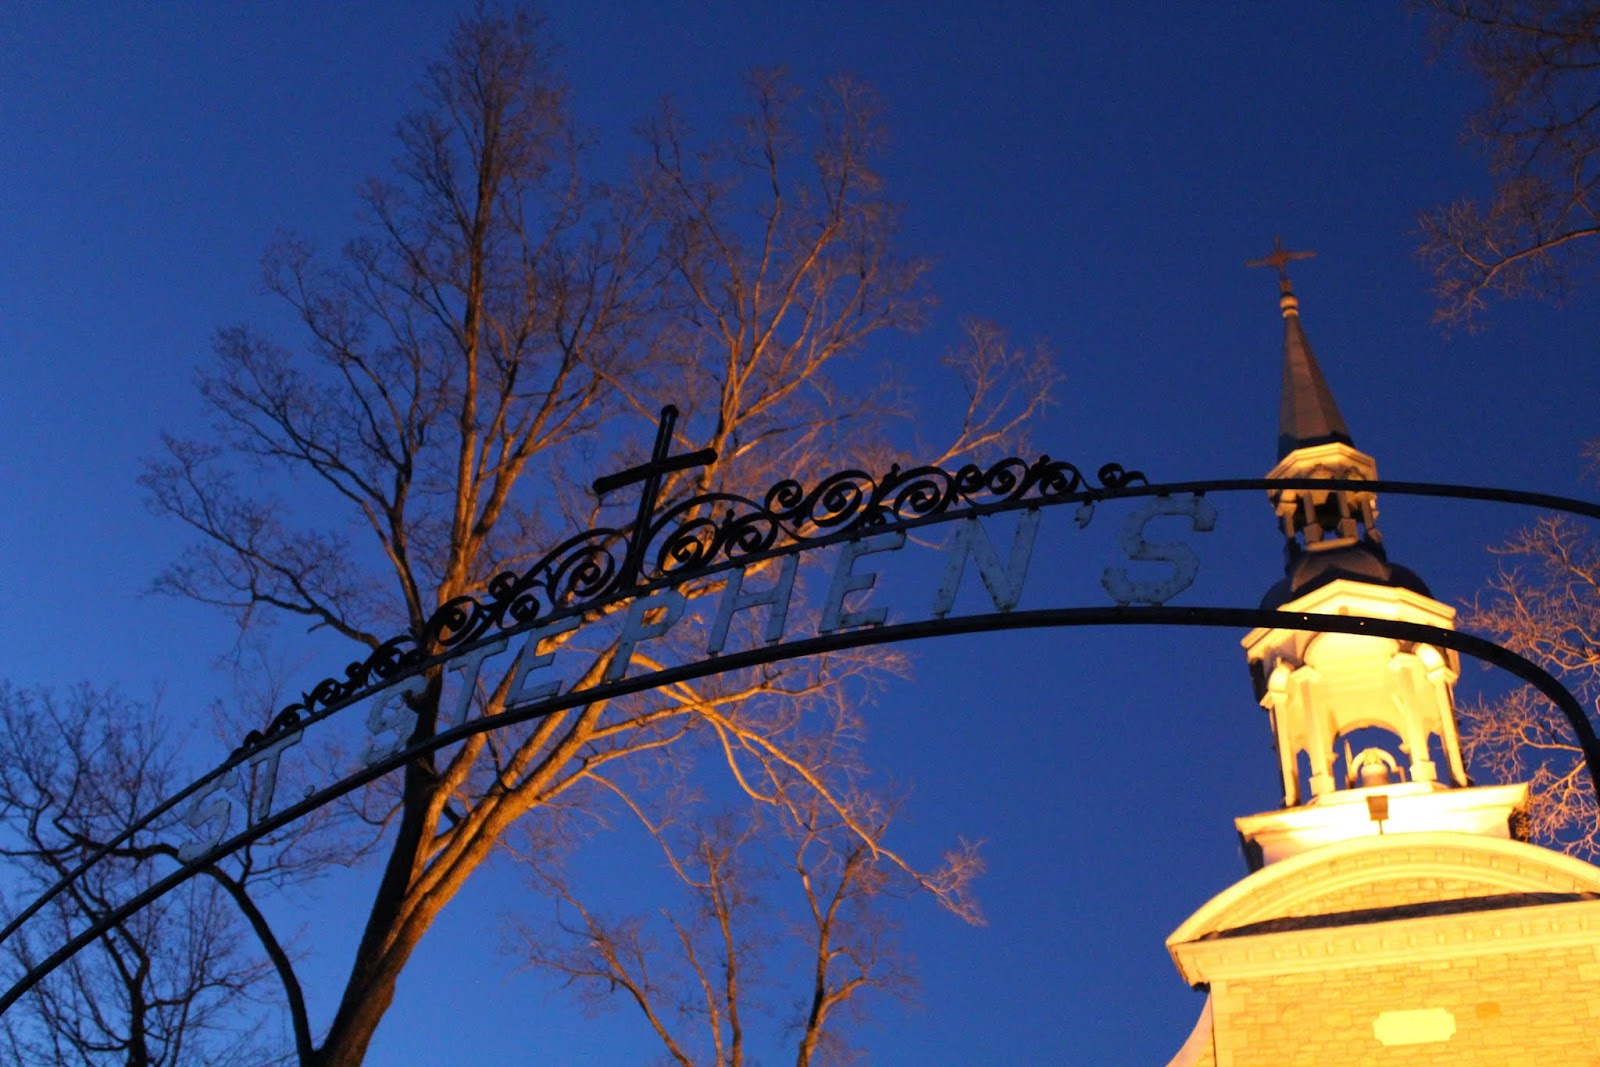 View of Ironwork sign for St. Stephen's silouetted against the crisp winter night sky